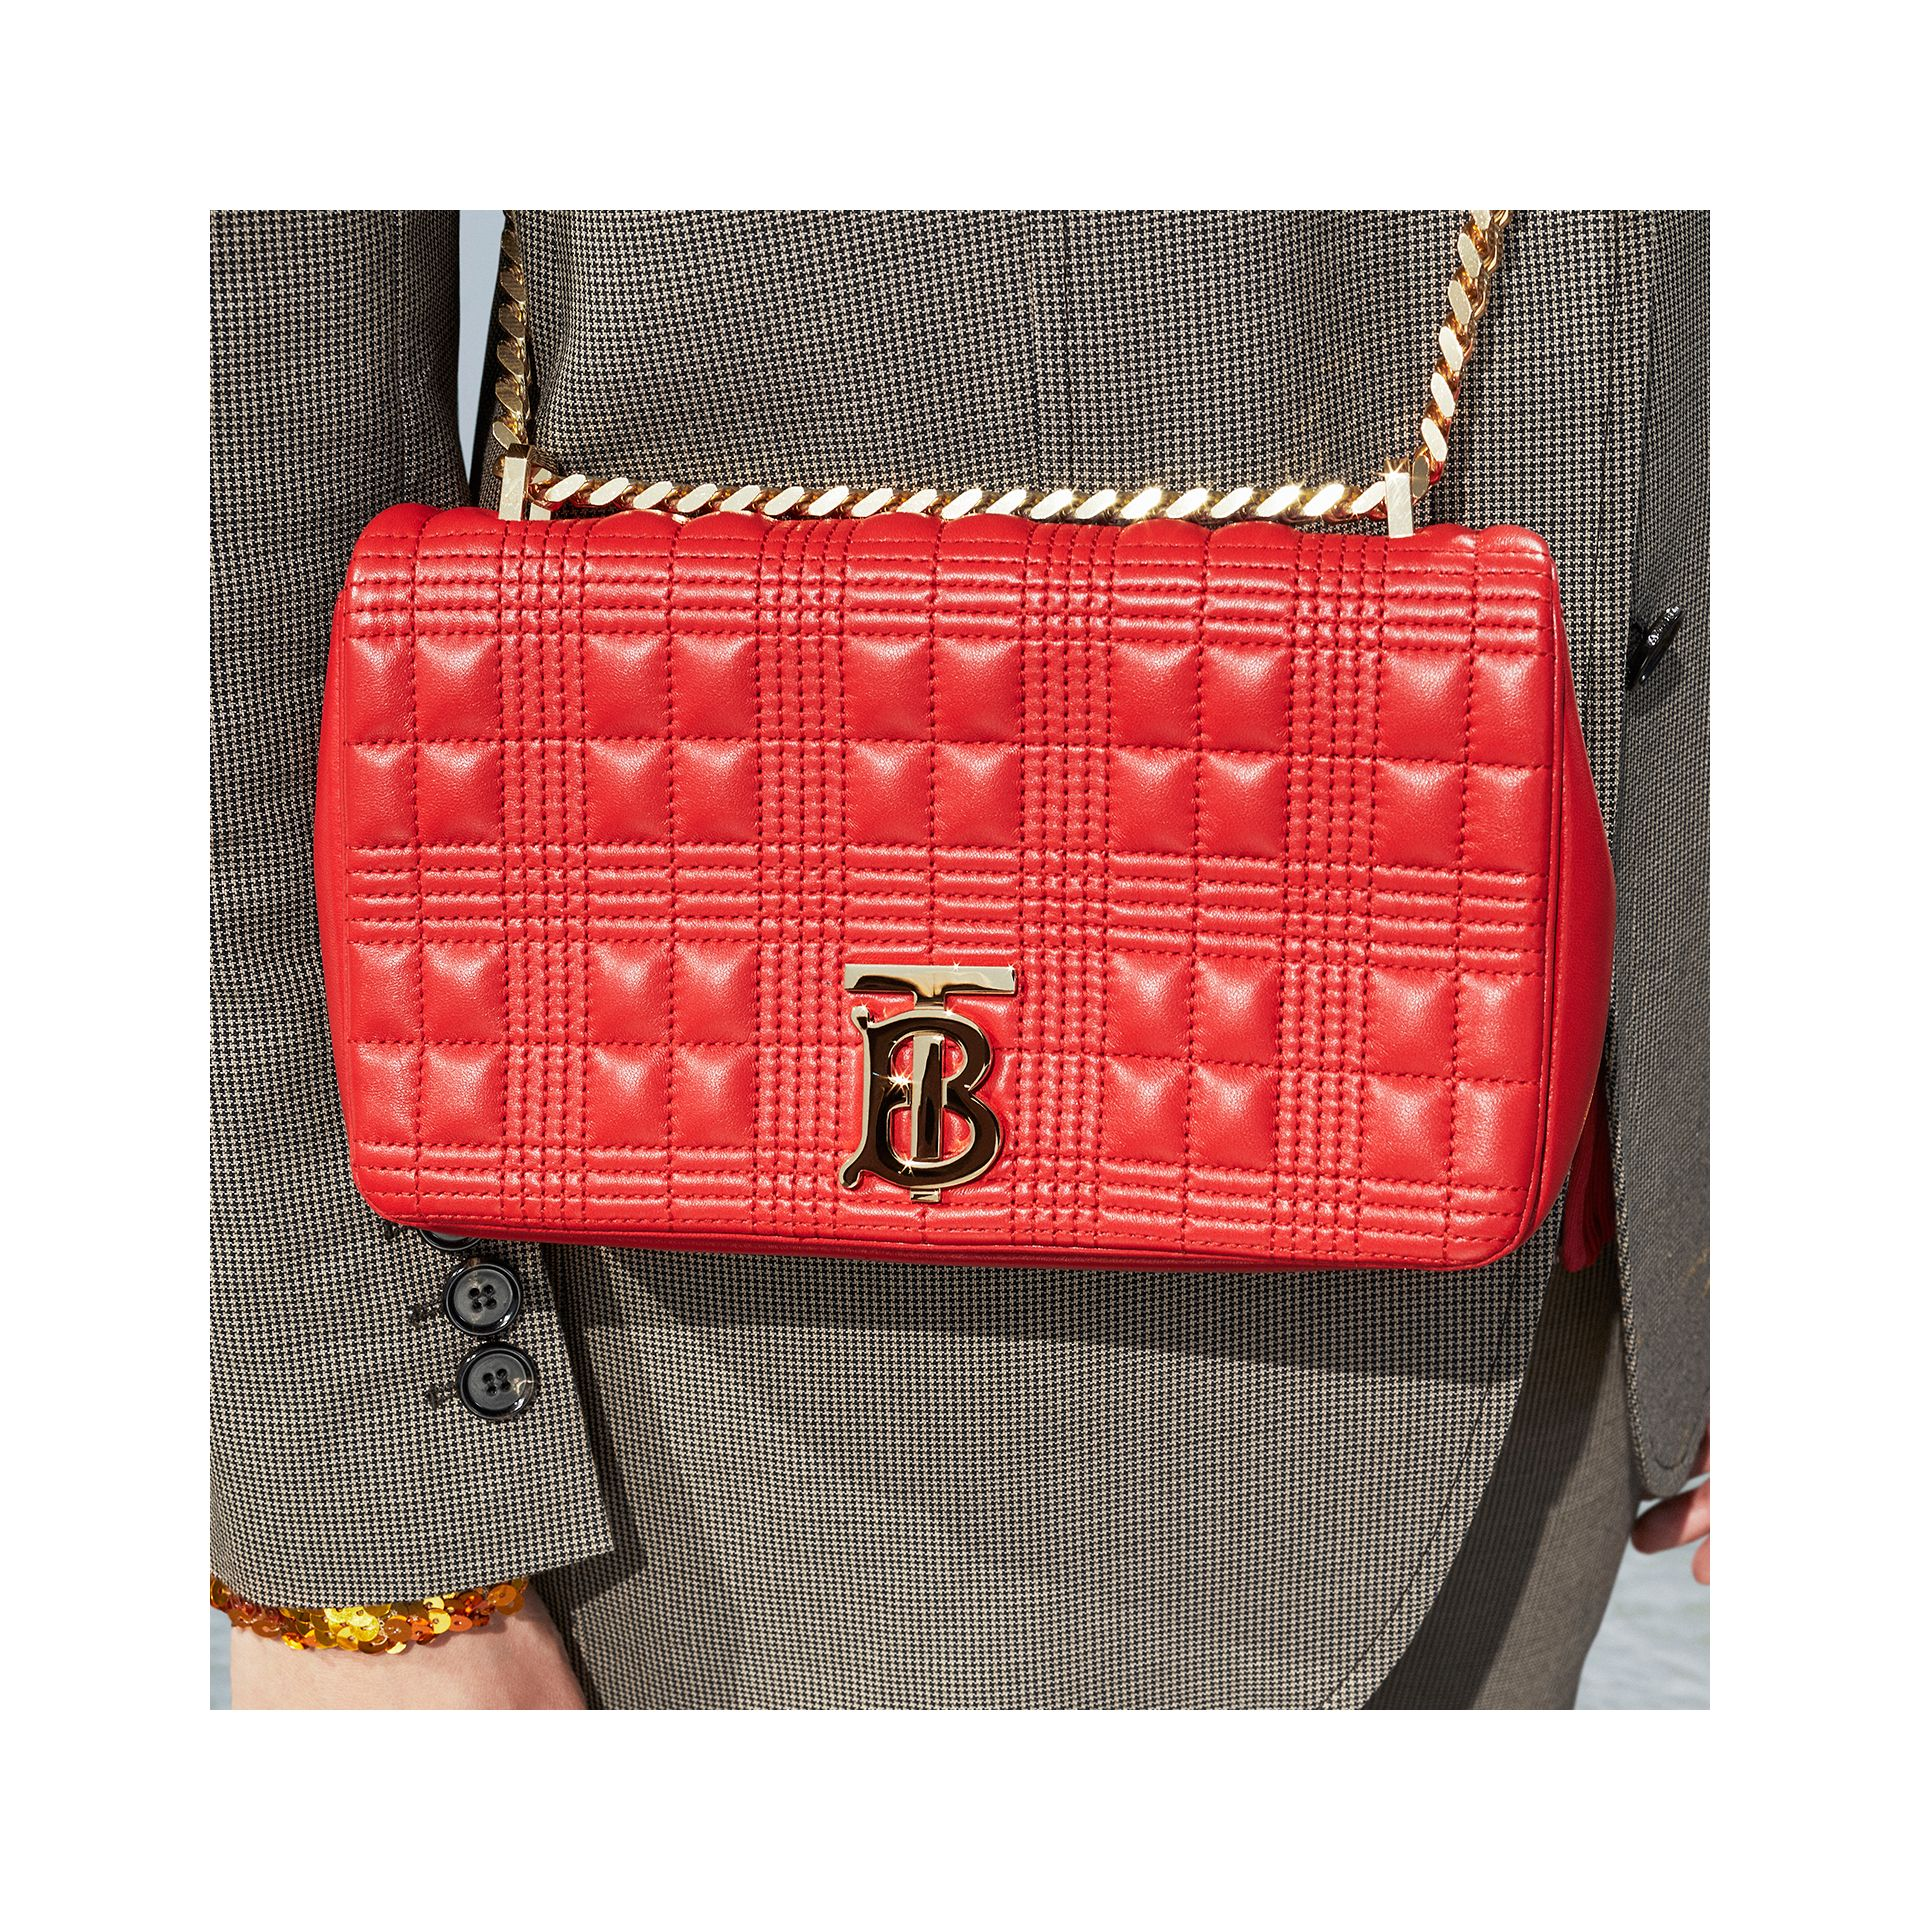 Small Quilted Lambskin Lola Bag in Bright Red - Women | Burberry - gallery image 9